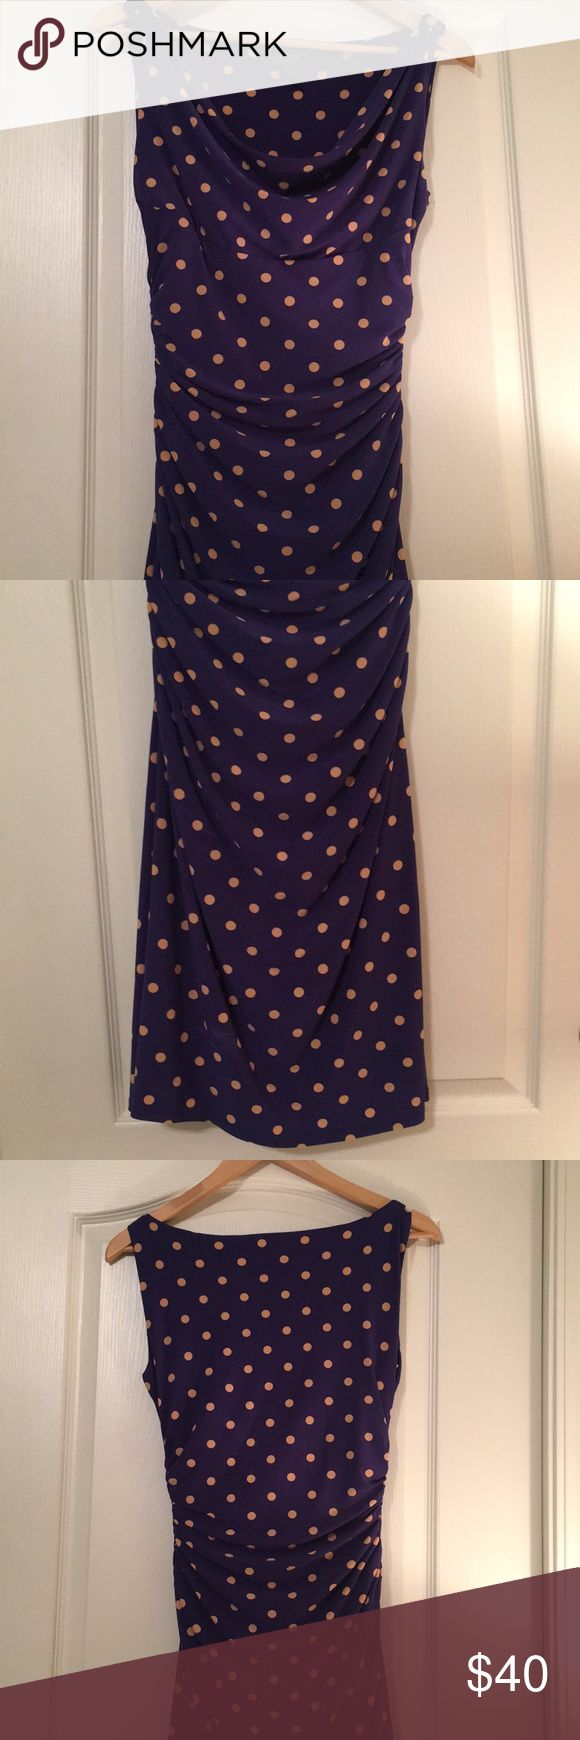 Ralph Lauren Polka Dot Dress Ralph Lauren jersey draped dress. Previously owned but in great condition. Perfect tight fit to show off figure for a night out! If you have any questions, please ask. :) Lauren Ralph Lauren Dresses Midi